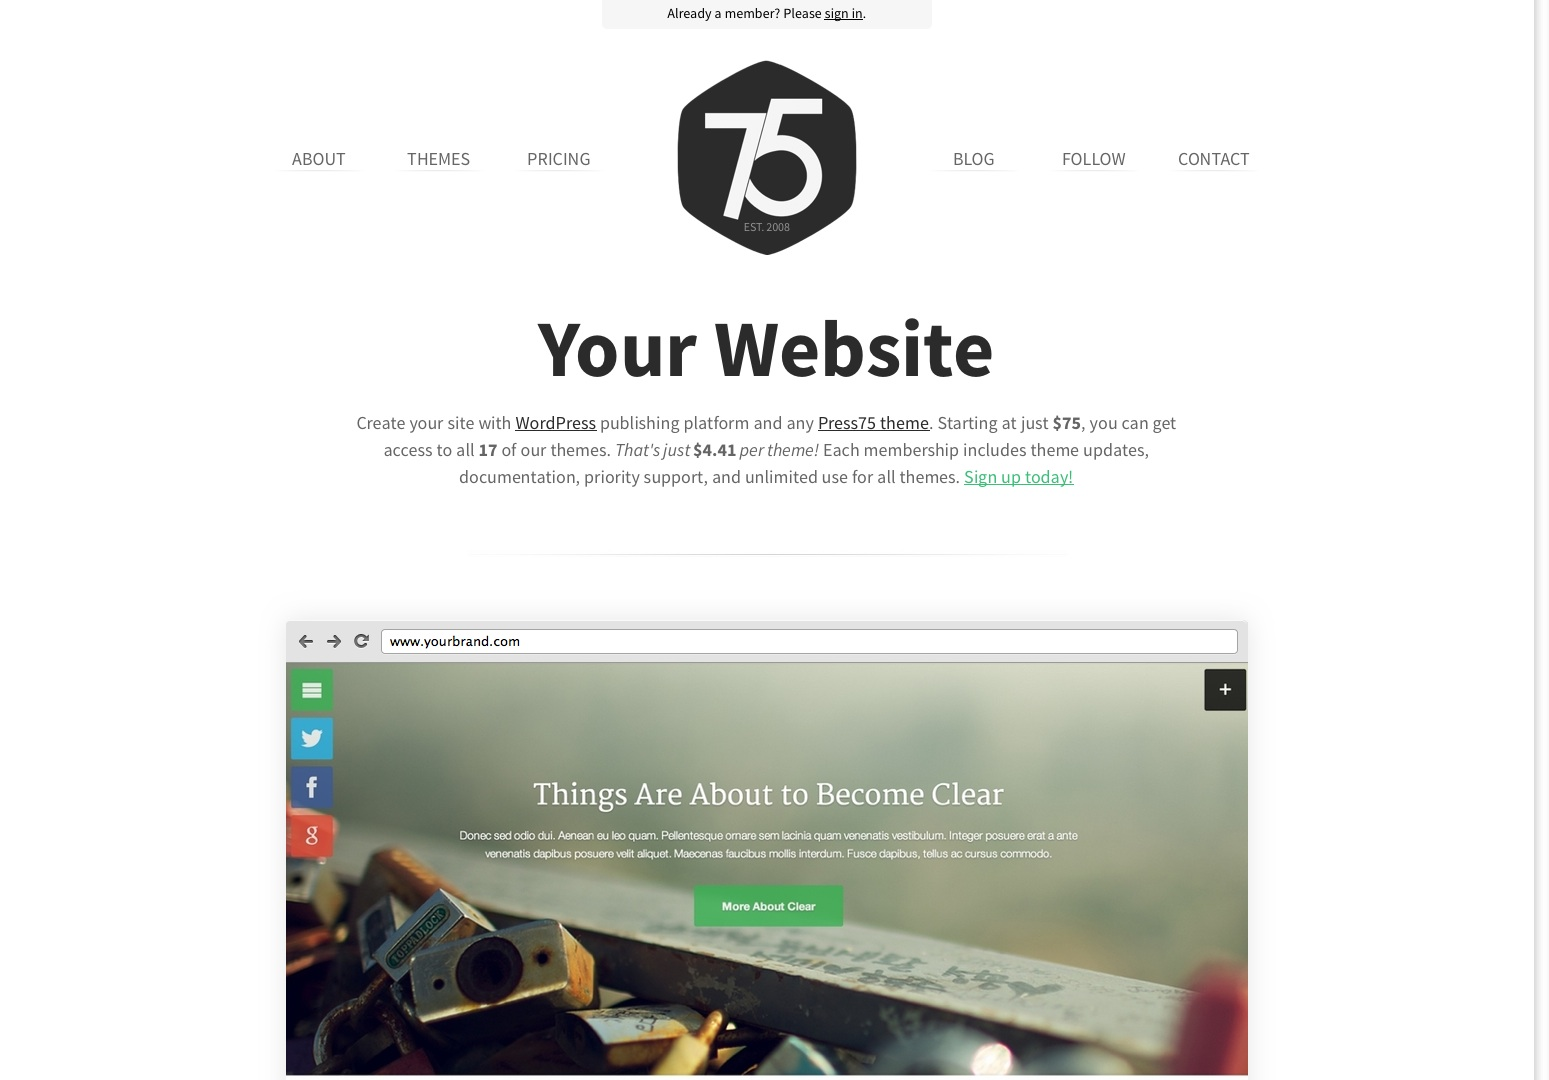 Premium WordPress Themes by Press75